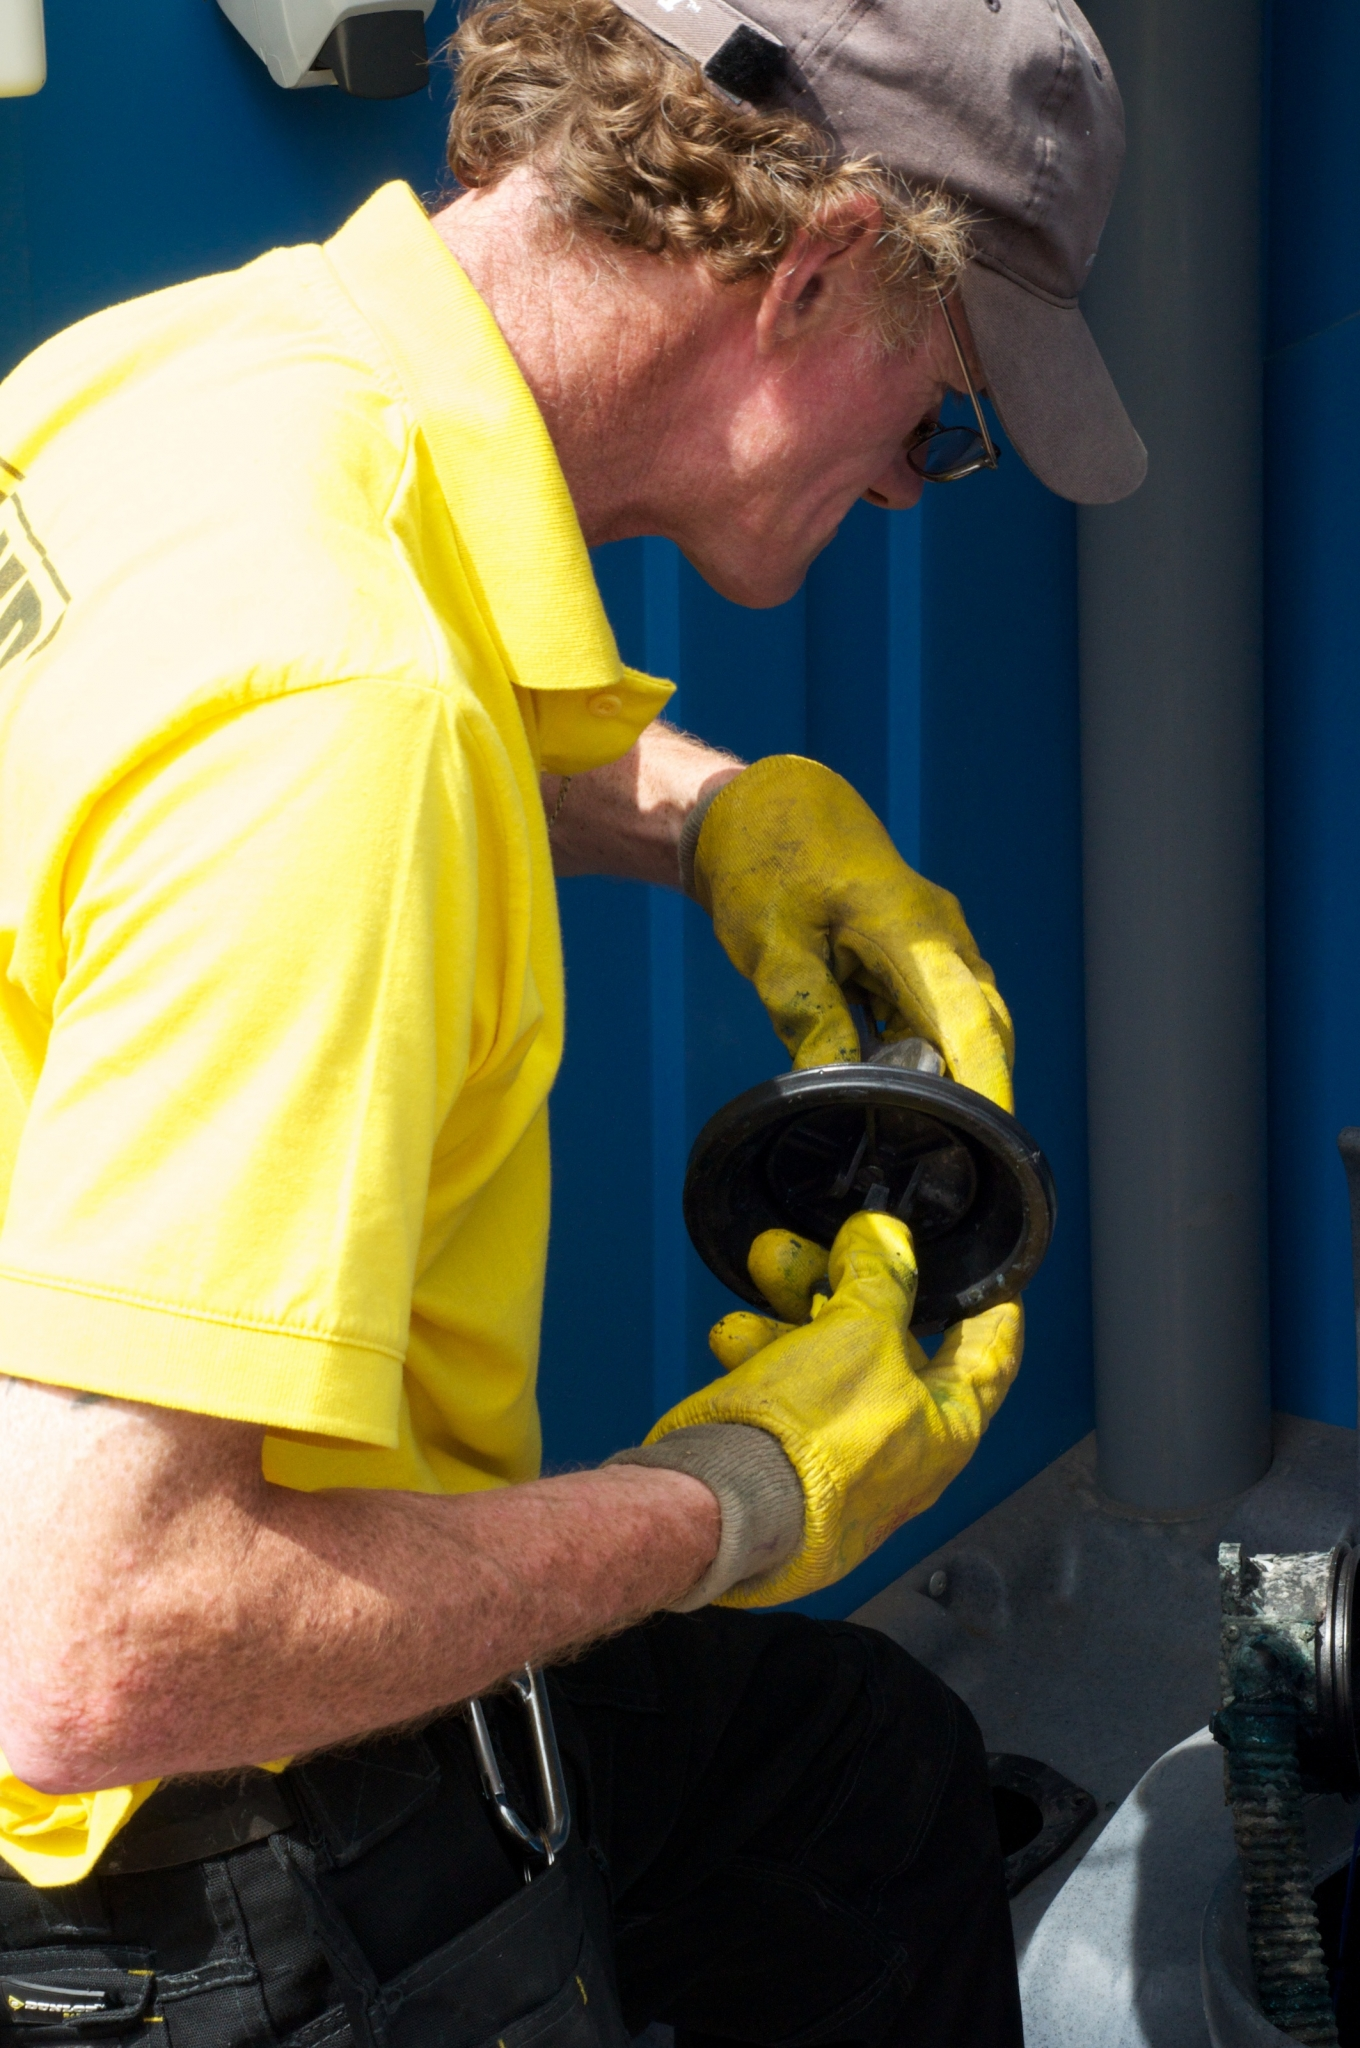 Moving Portable Toilet Introduces Automatic Routing System